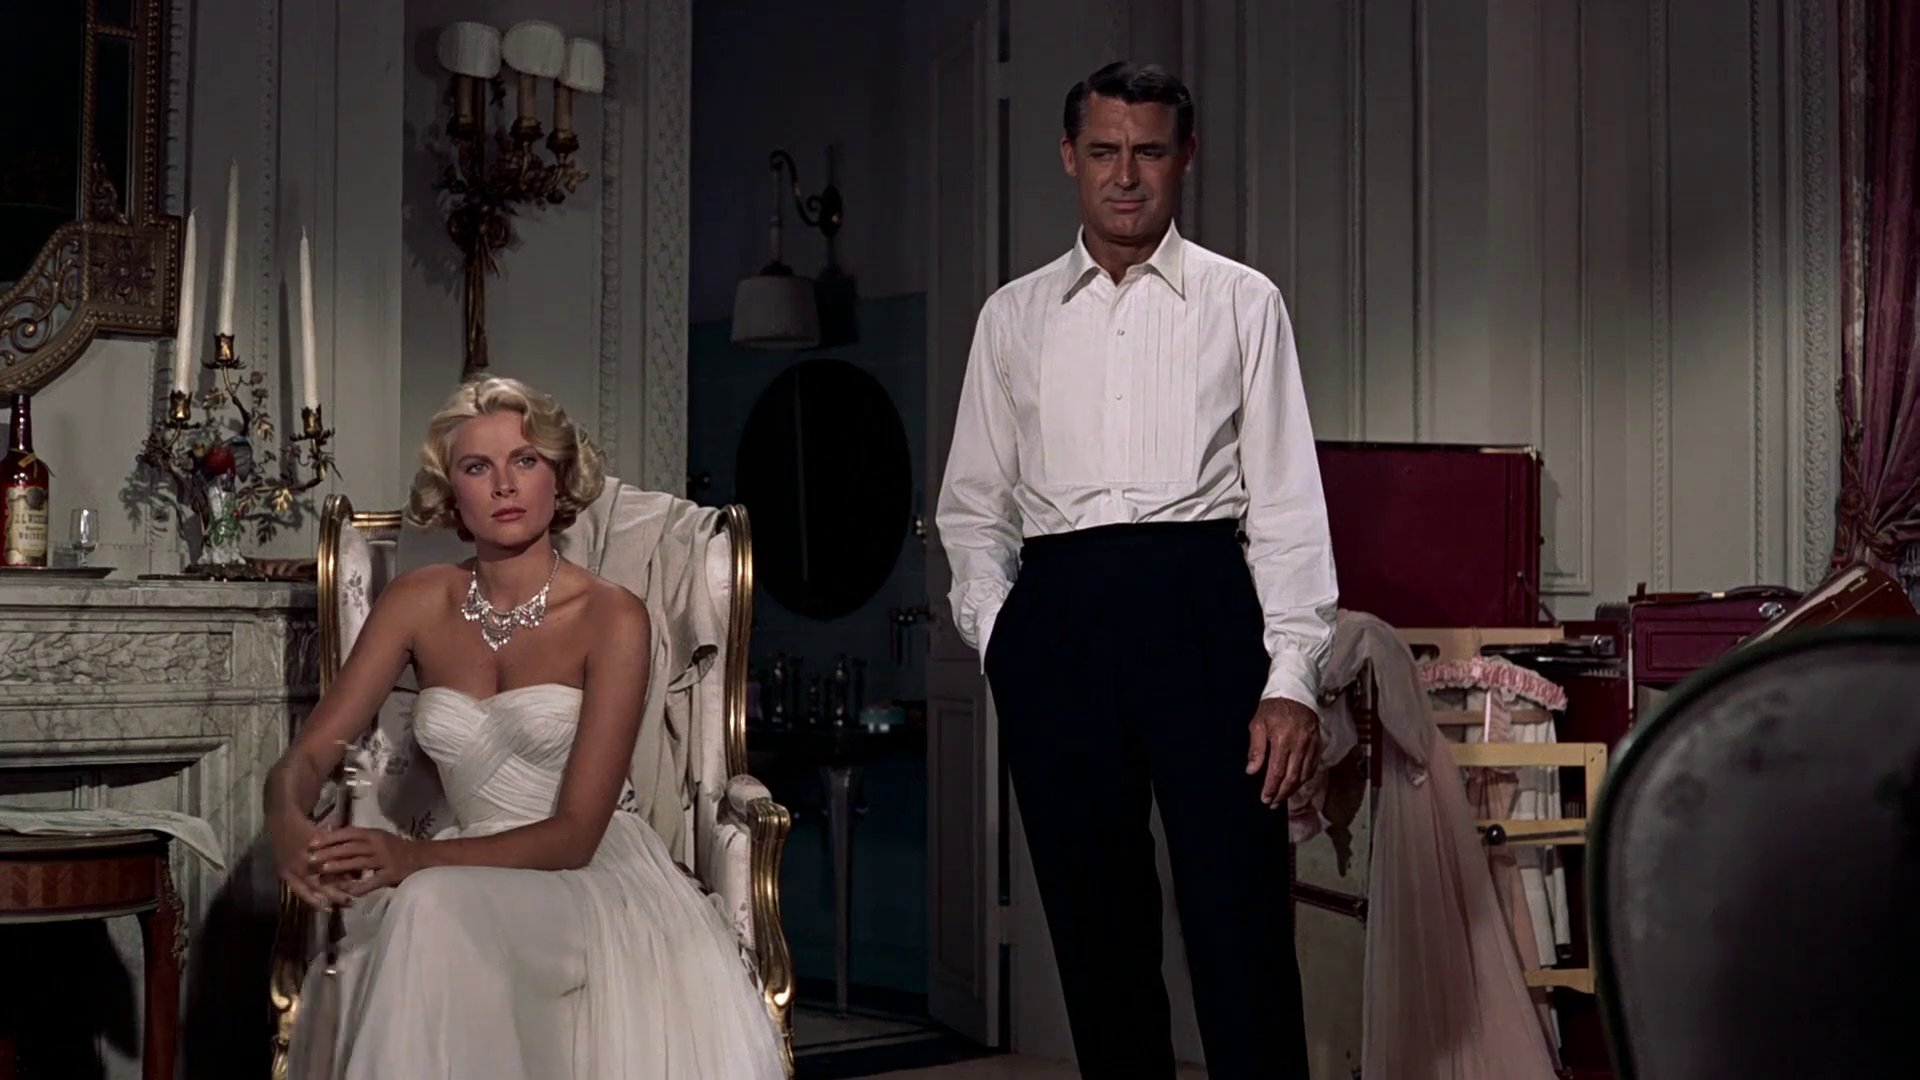 f44f5ada760ea Cary Grant and Grace Kelly - To catch a thief